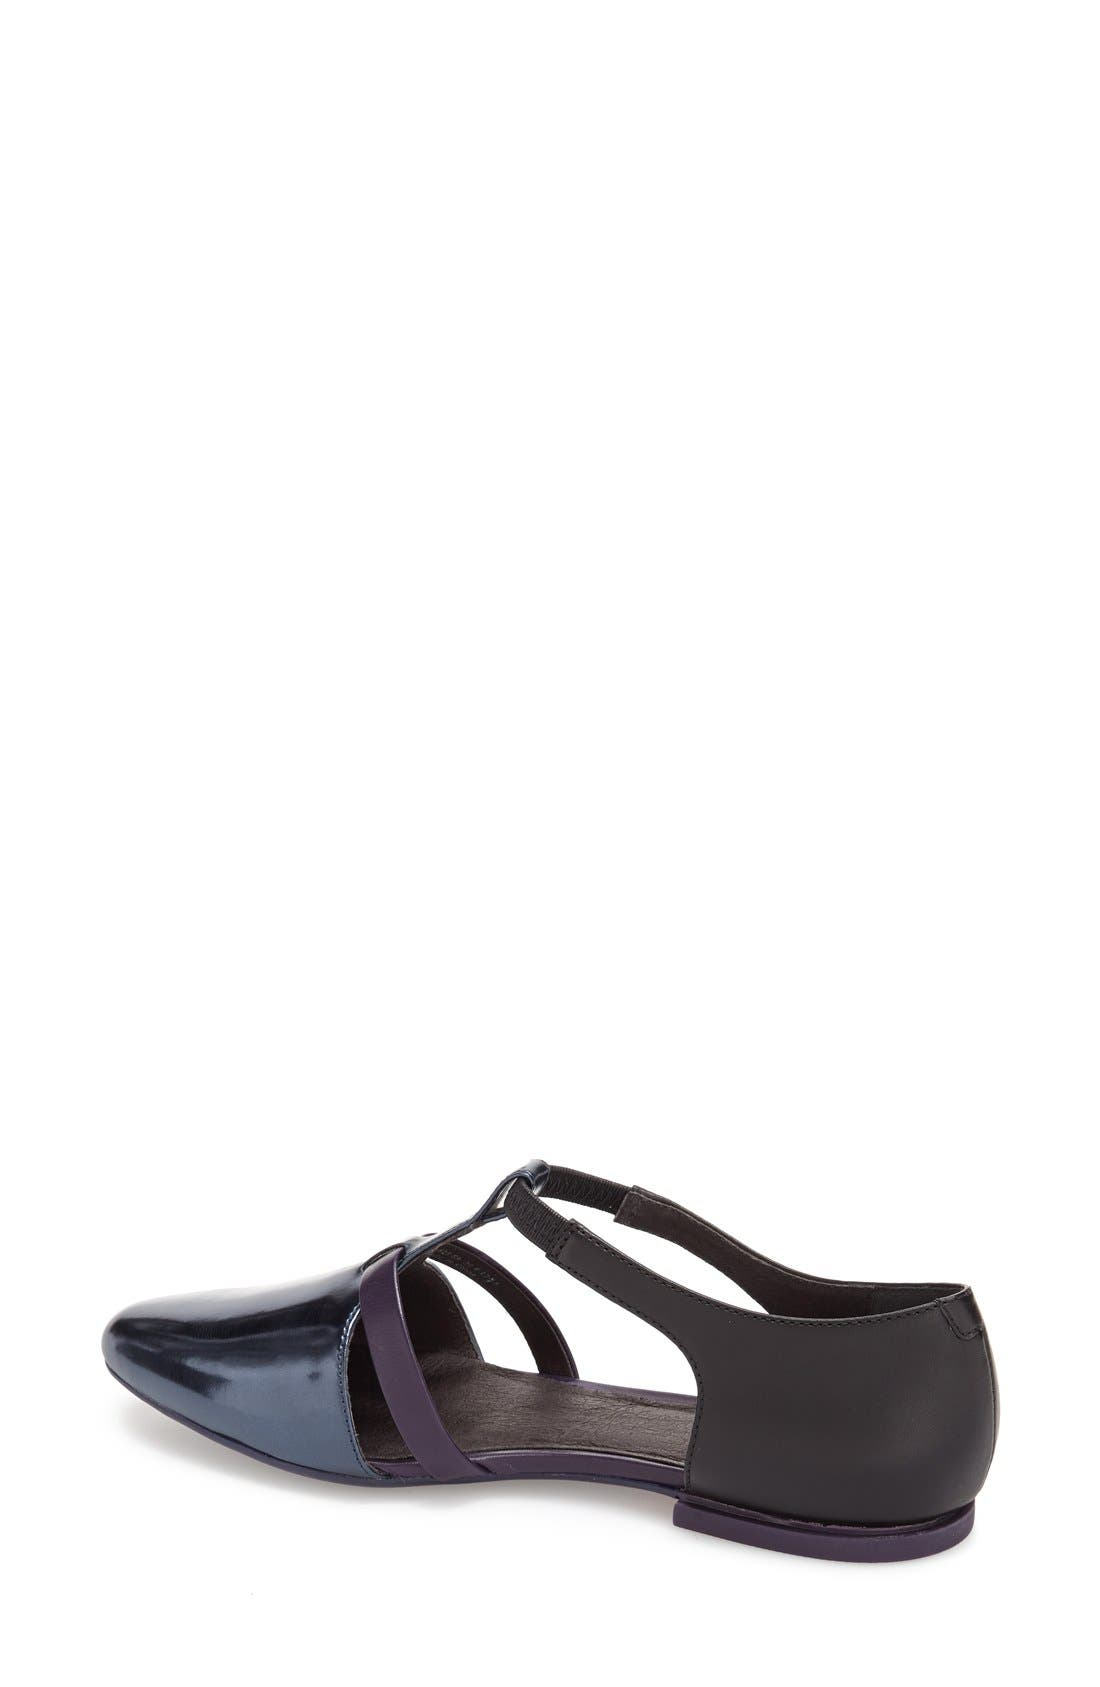 'Isadora' T-Strap Leather Flat,                             Alternate thumbnail 3, color,                             001